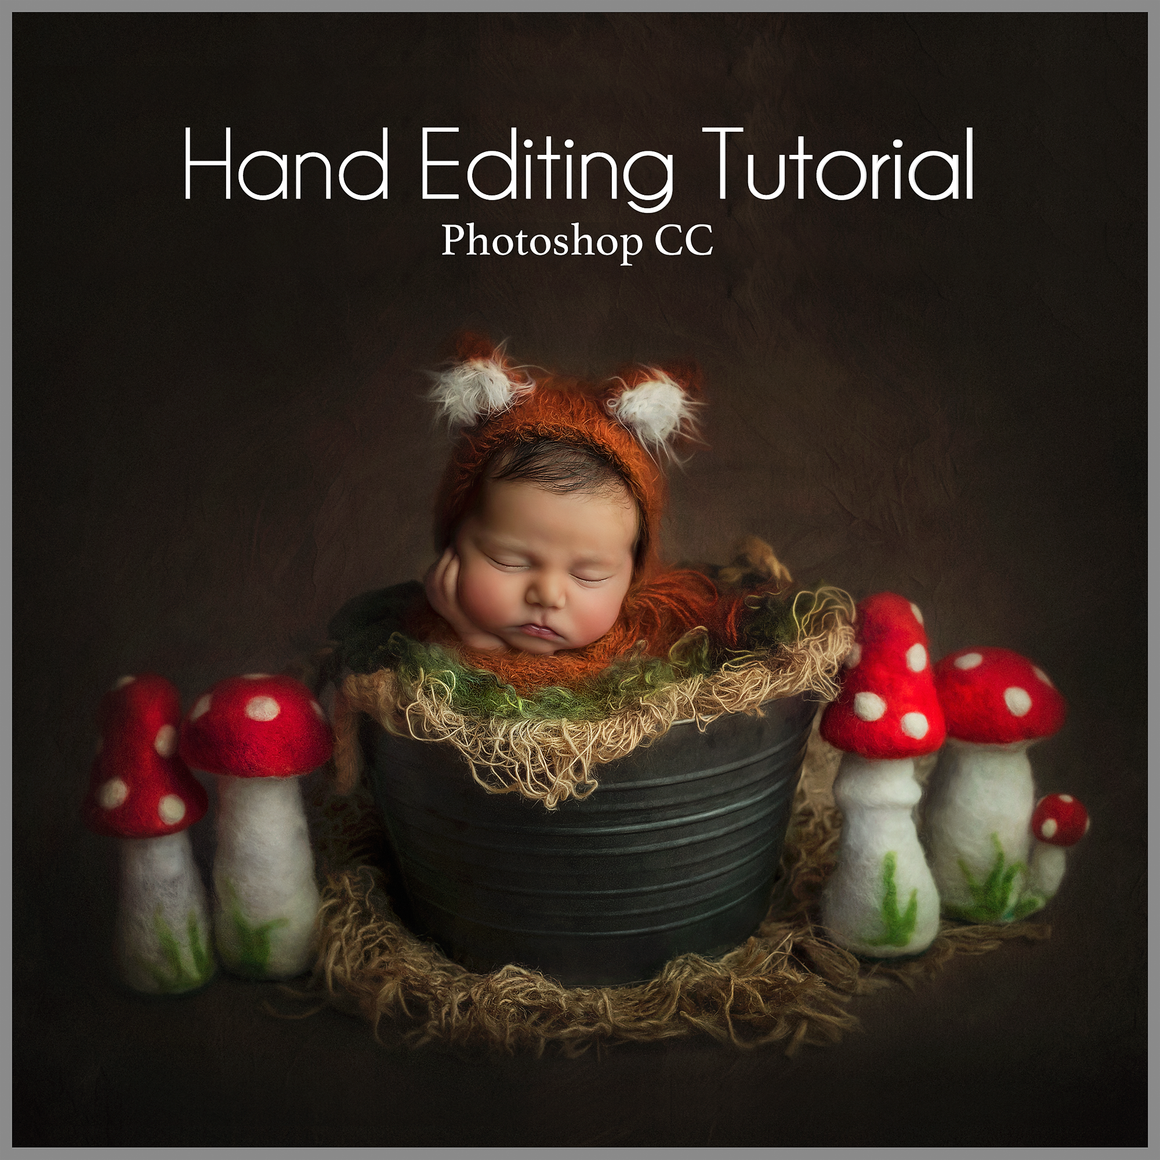 Fox and Toadstools Newborn Editing Tutorial | Photoshop Class - Dream Artsy Actions Tutorials